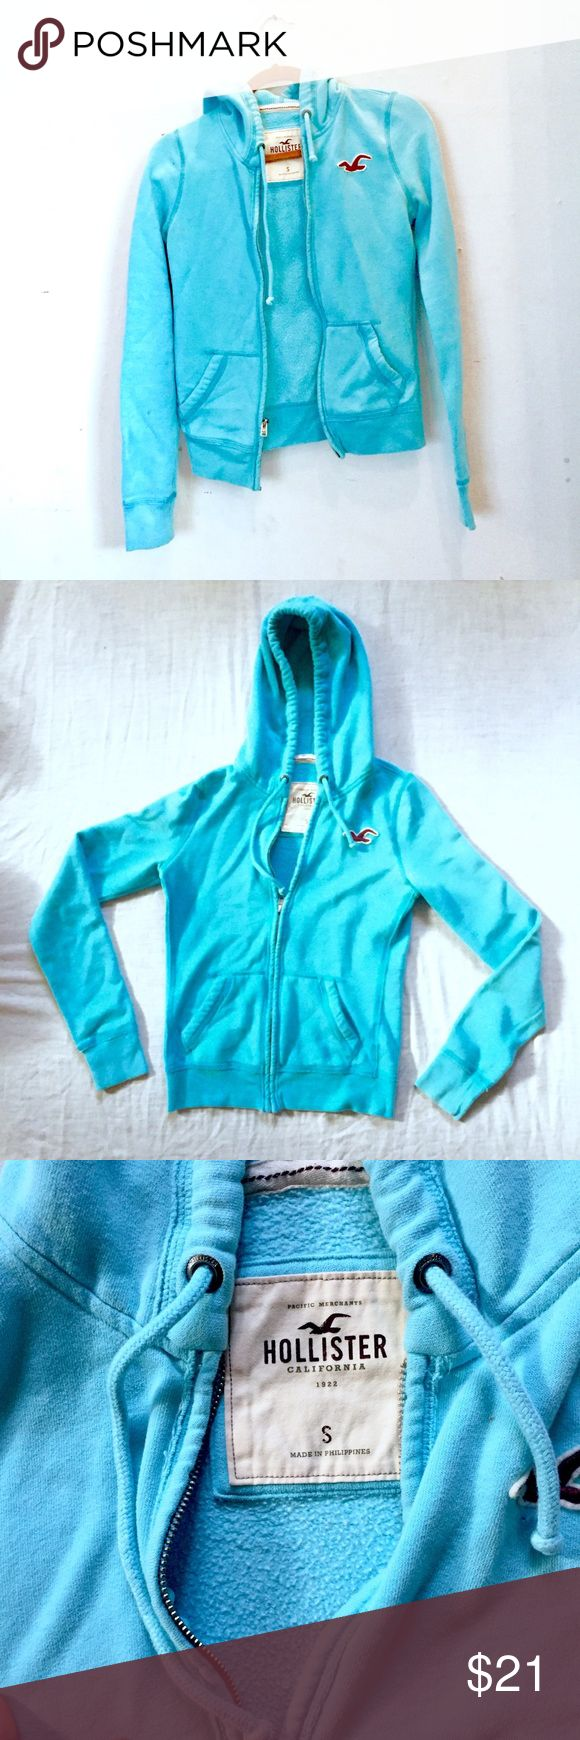 Baby Blue Hollister Jacket This Hollister jacket is a size small in juniors & in good used condition. It zips up and there's also a hood. There a few discolorations as shown in the pictures but otherwise this is a comfy jacket! Hollister Jackets & Coats